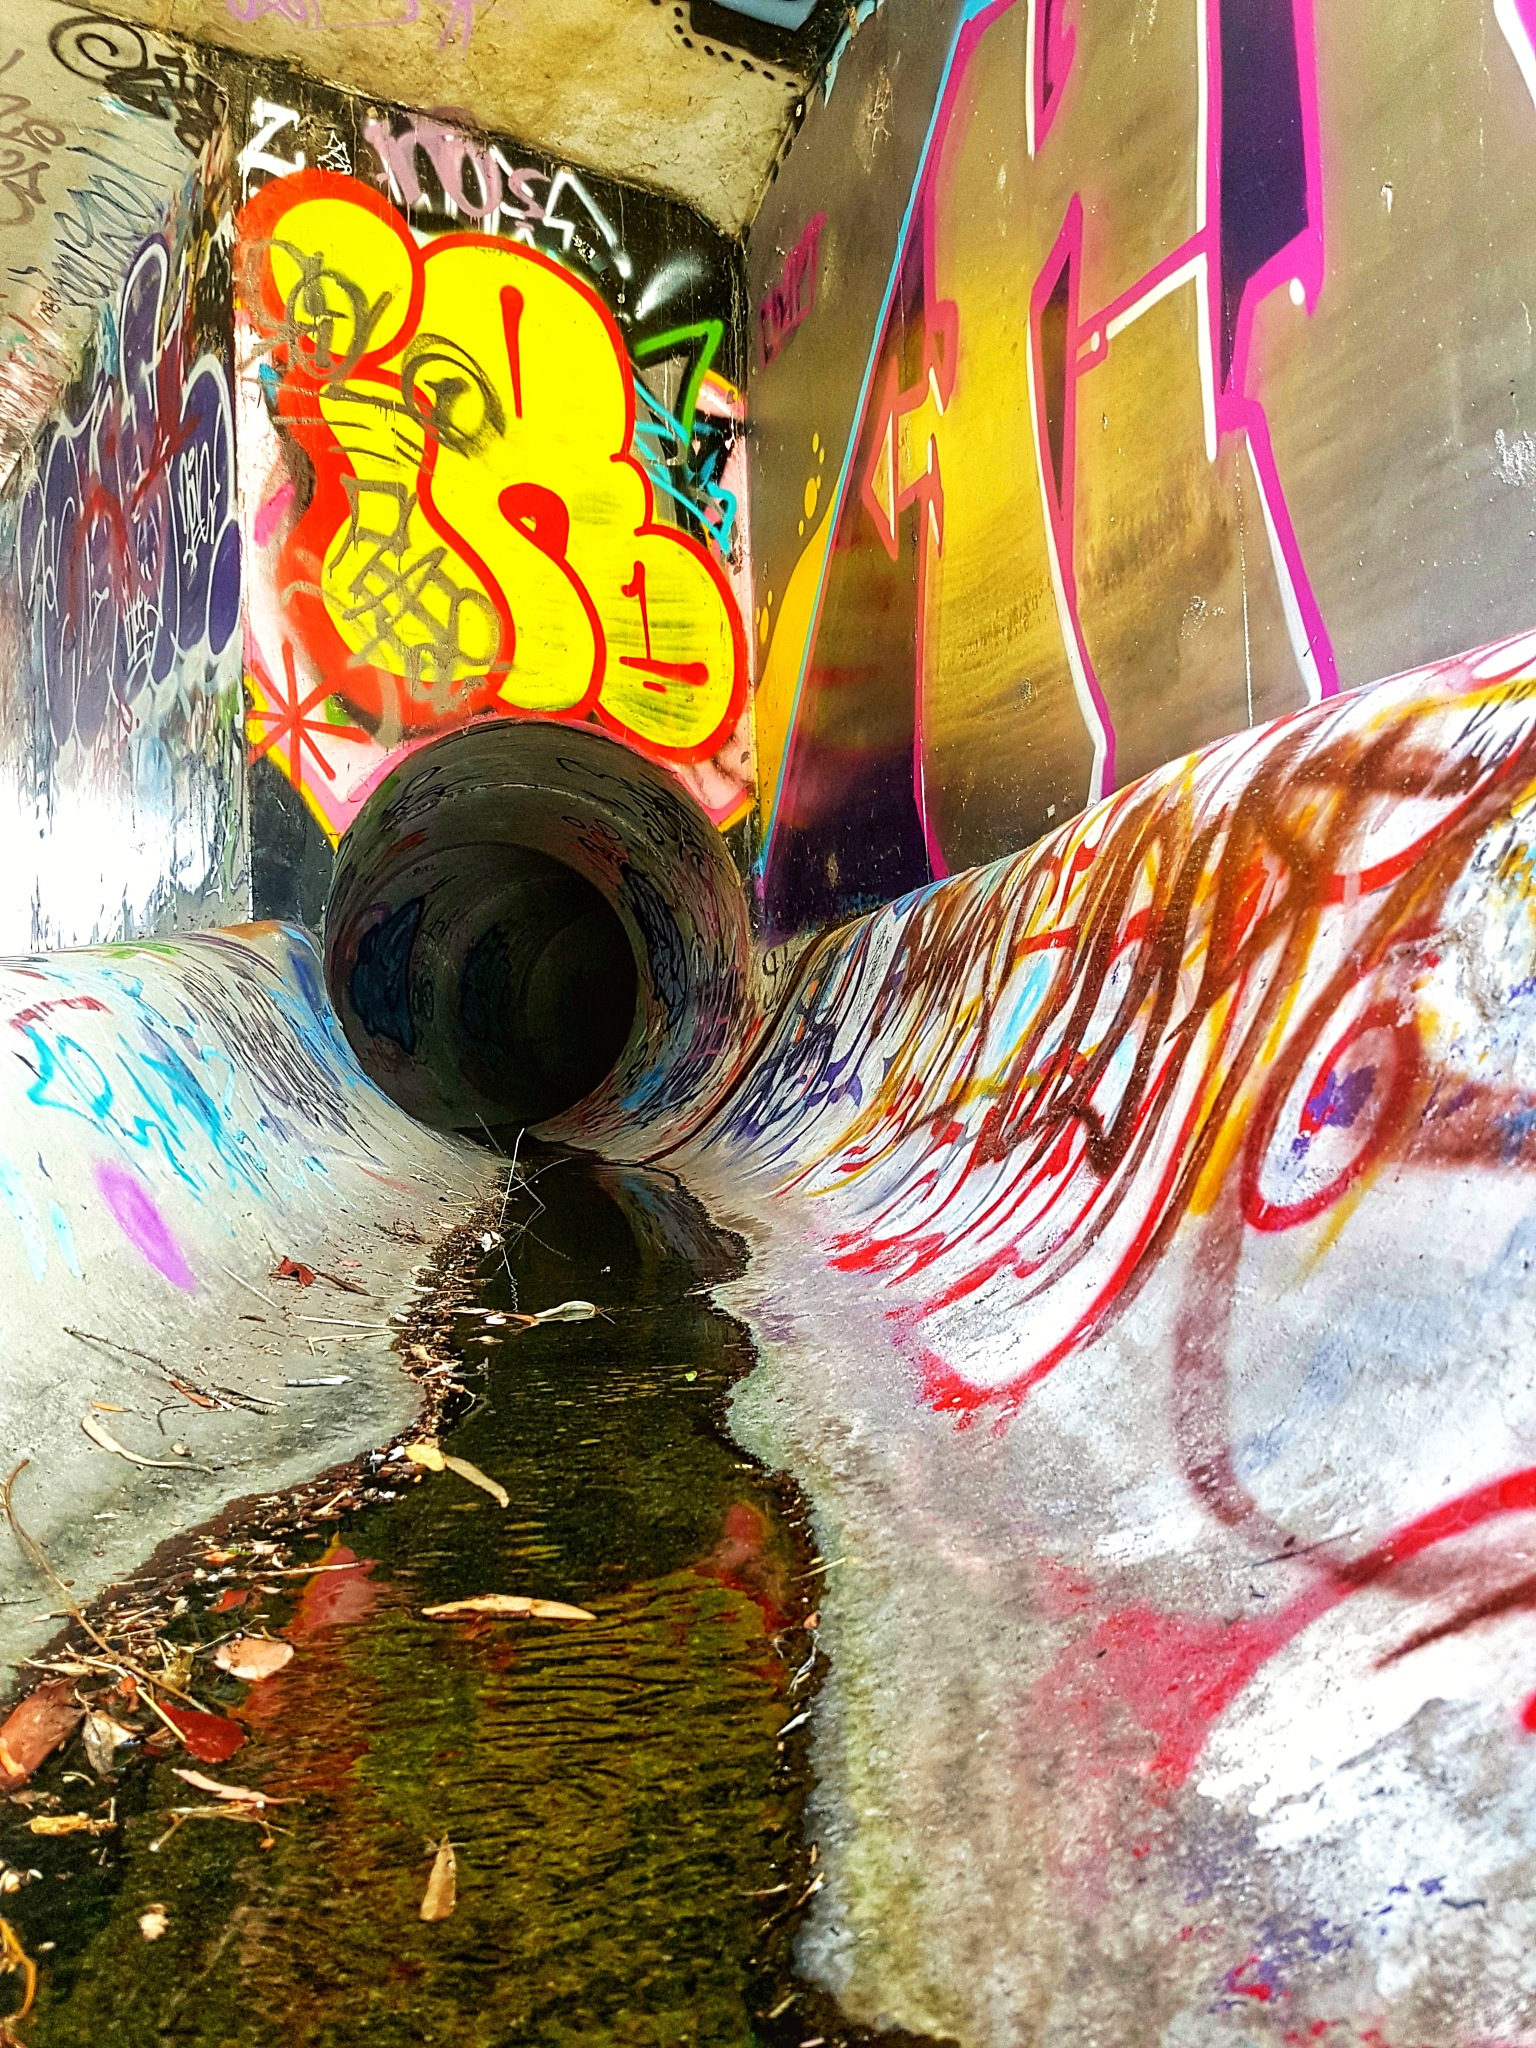 Tunnel Vision by Tom